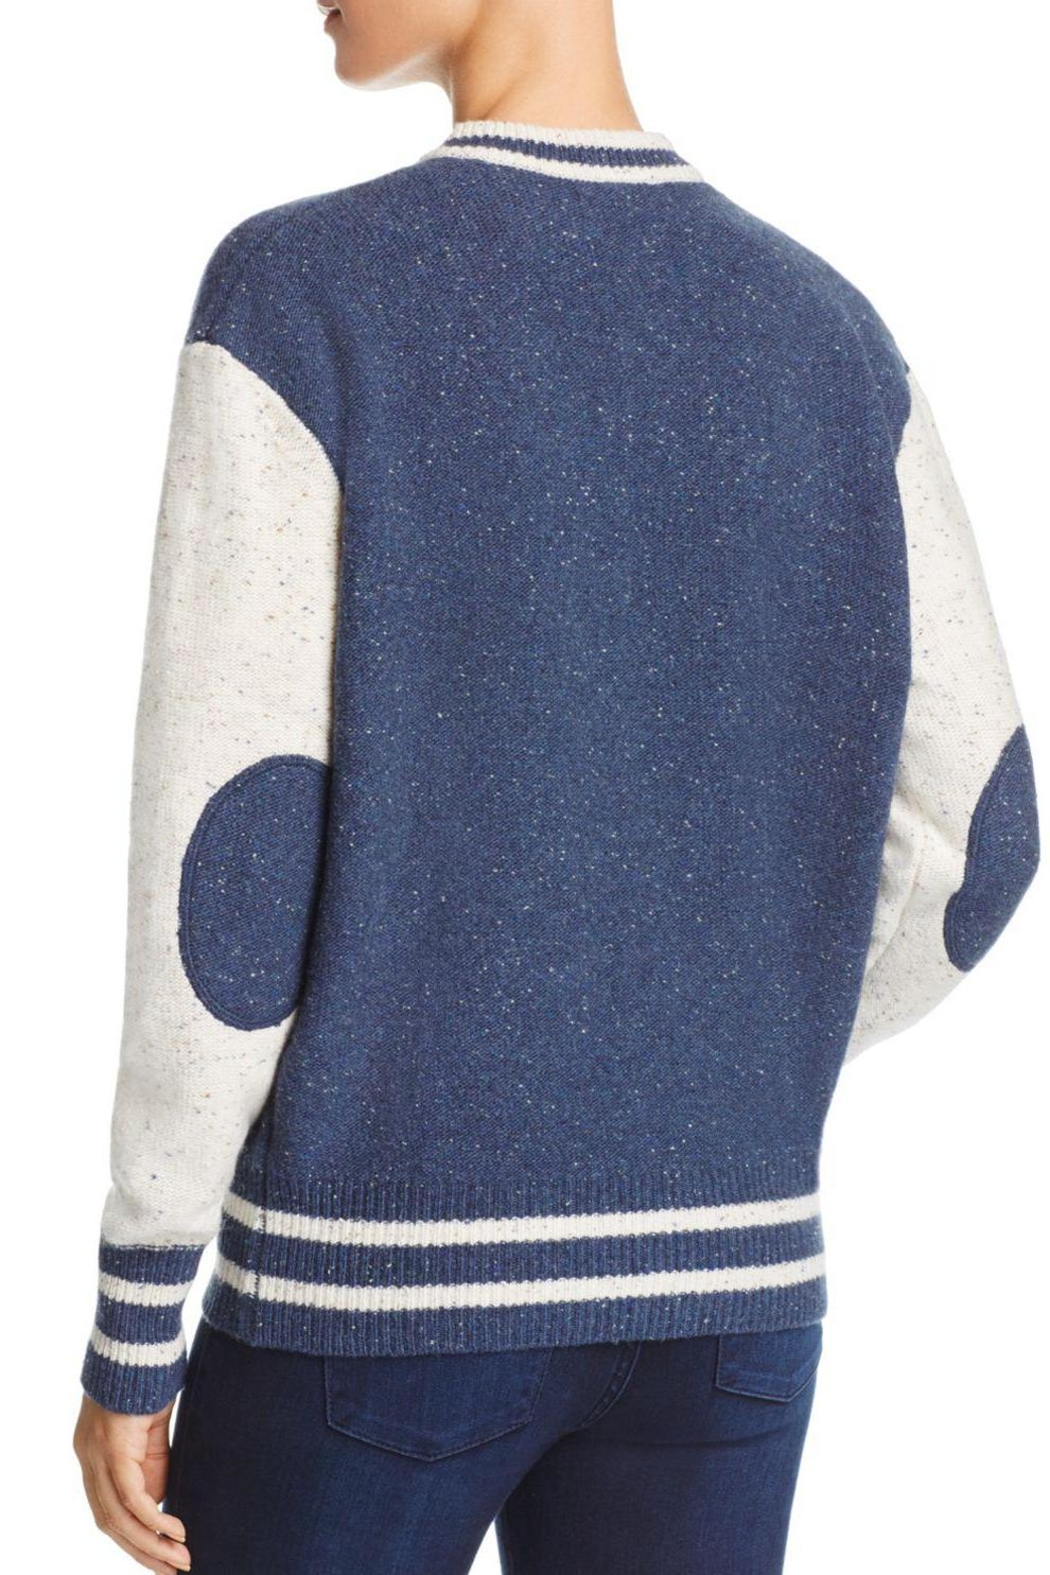 Joie Blakesly Varsity Sweater - Front Full Image